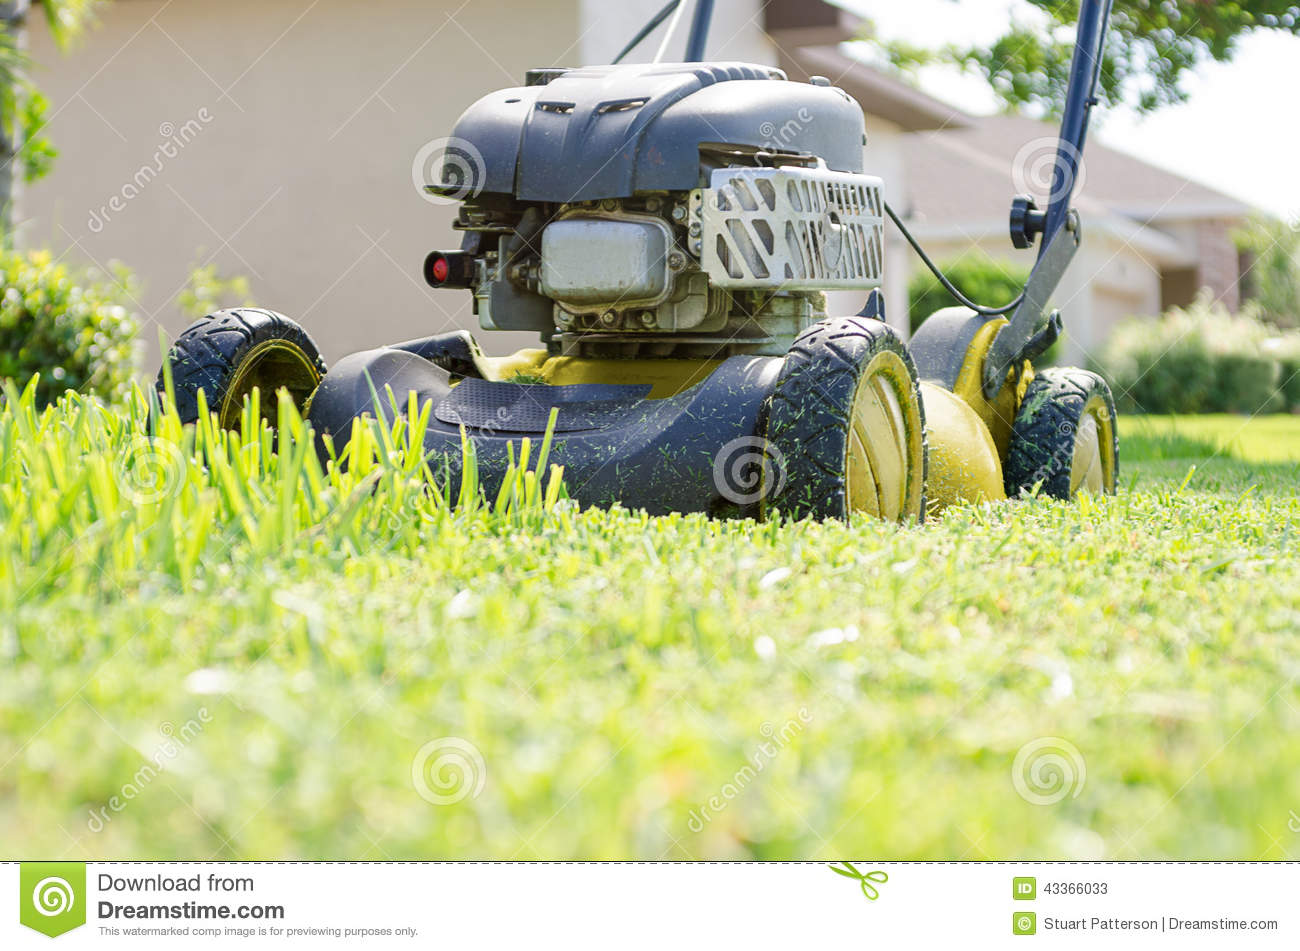 A lawn mower cutting grass stock image image of push for Lawn mower cutting grass